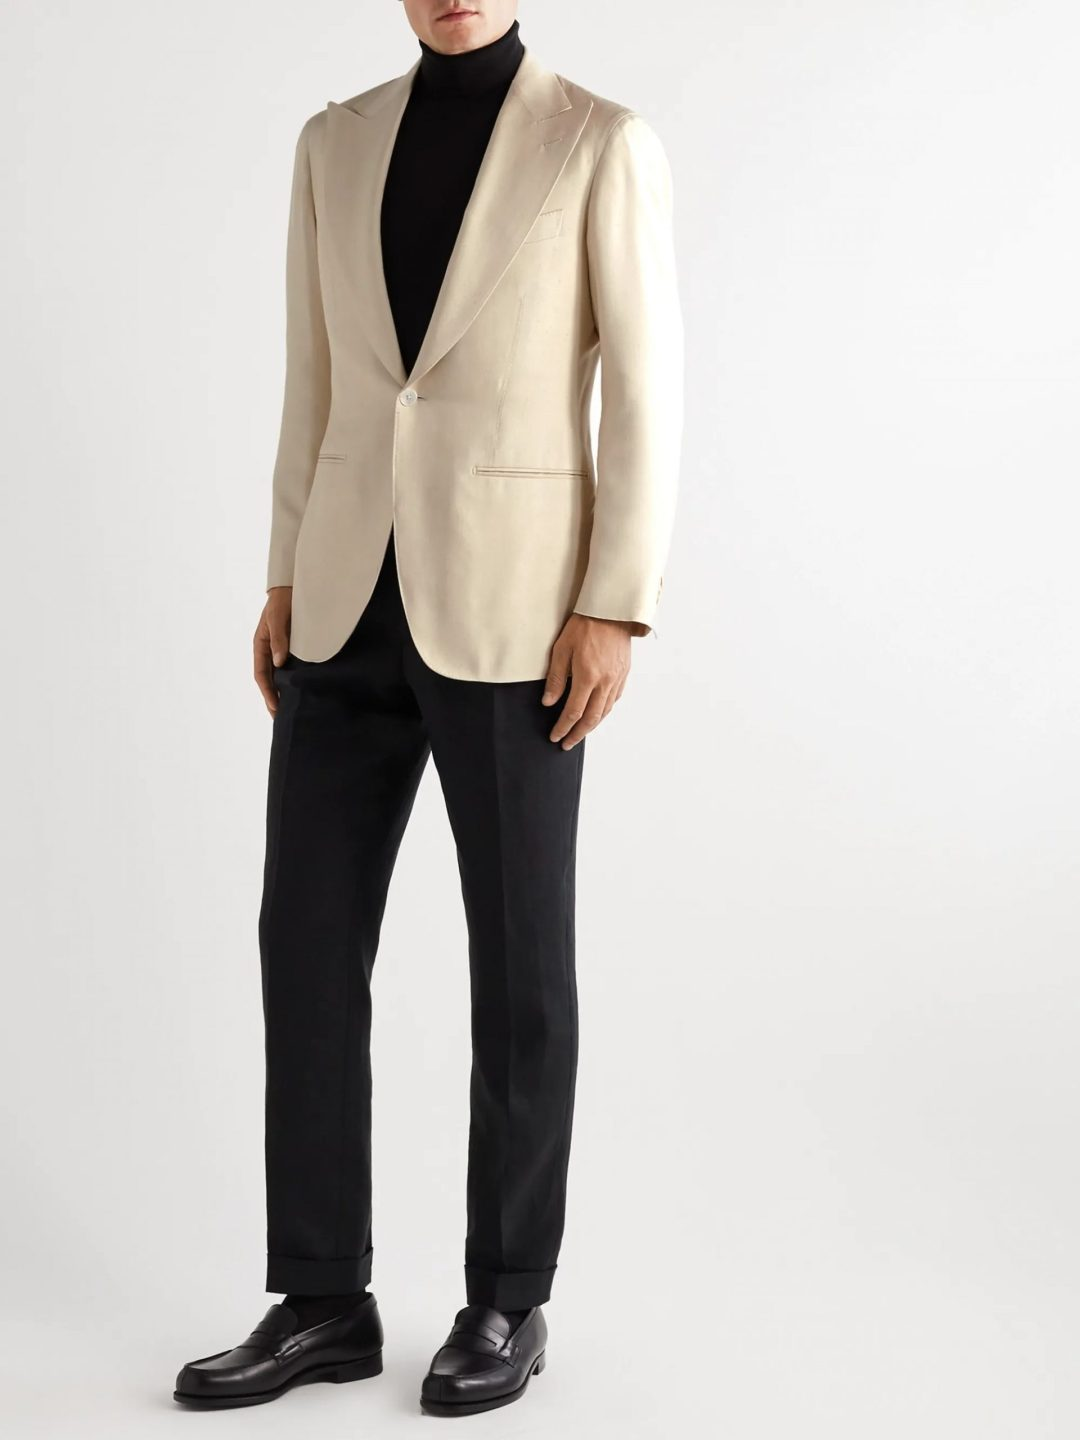 What To Wear To A Movie Premiere For Men: Cream tuxedo jacket